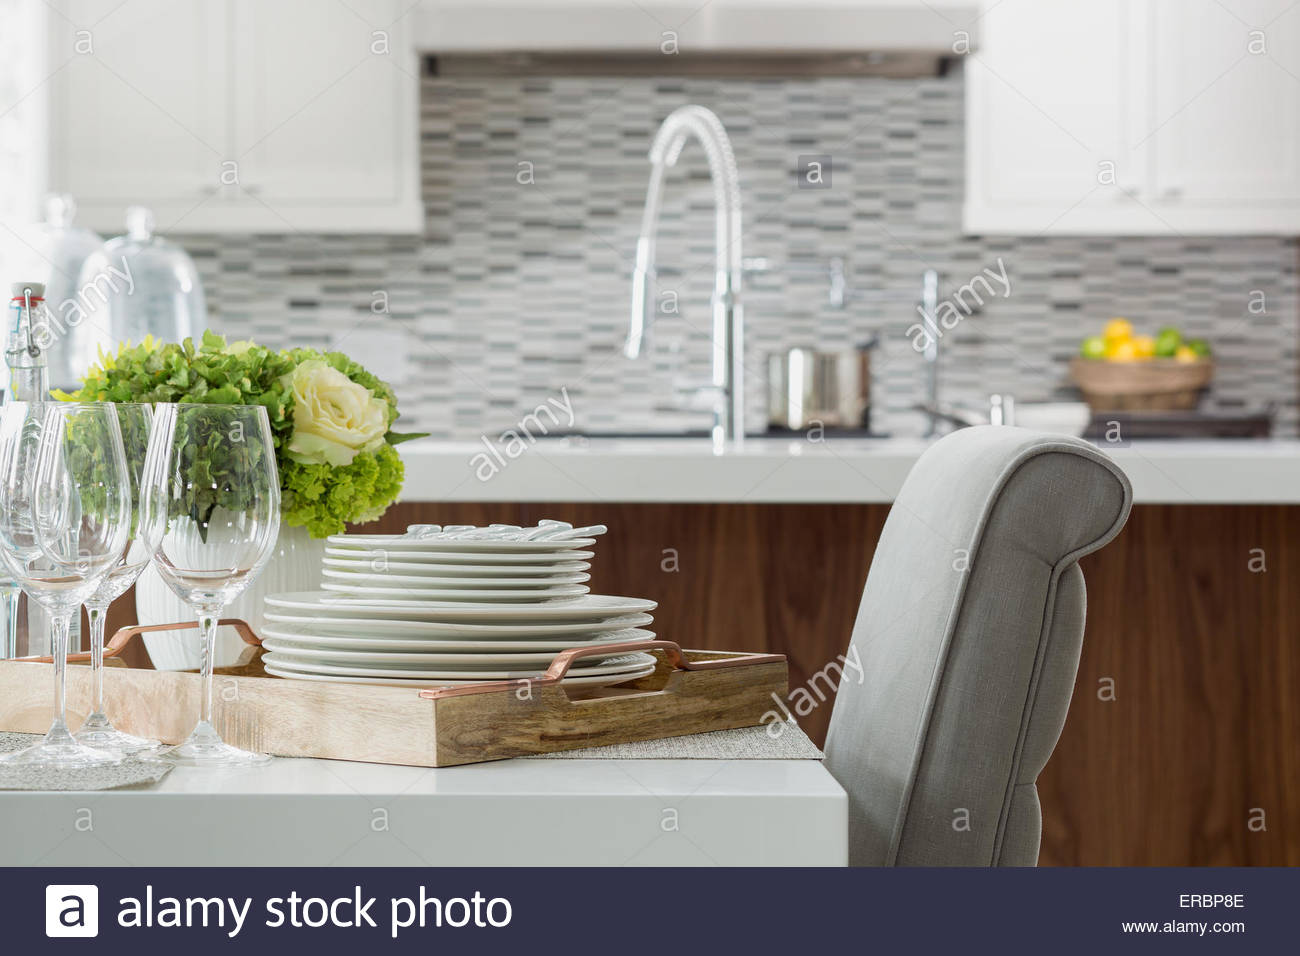 Place settings on tray elegant dining room table - Stock Image